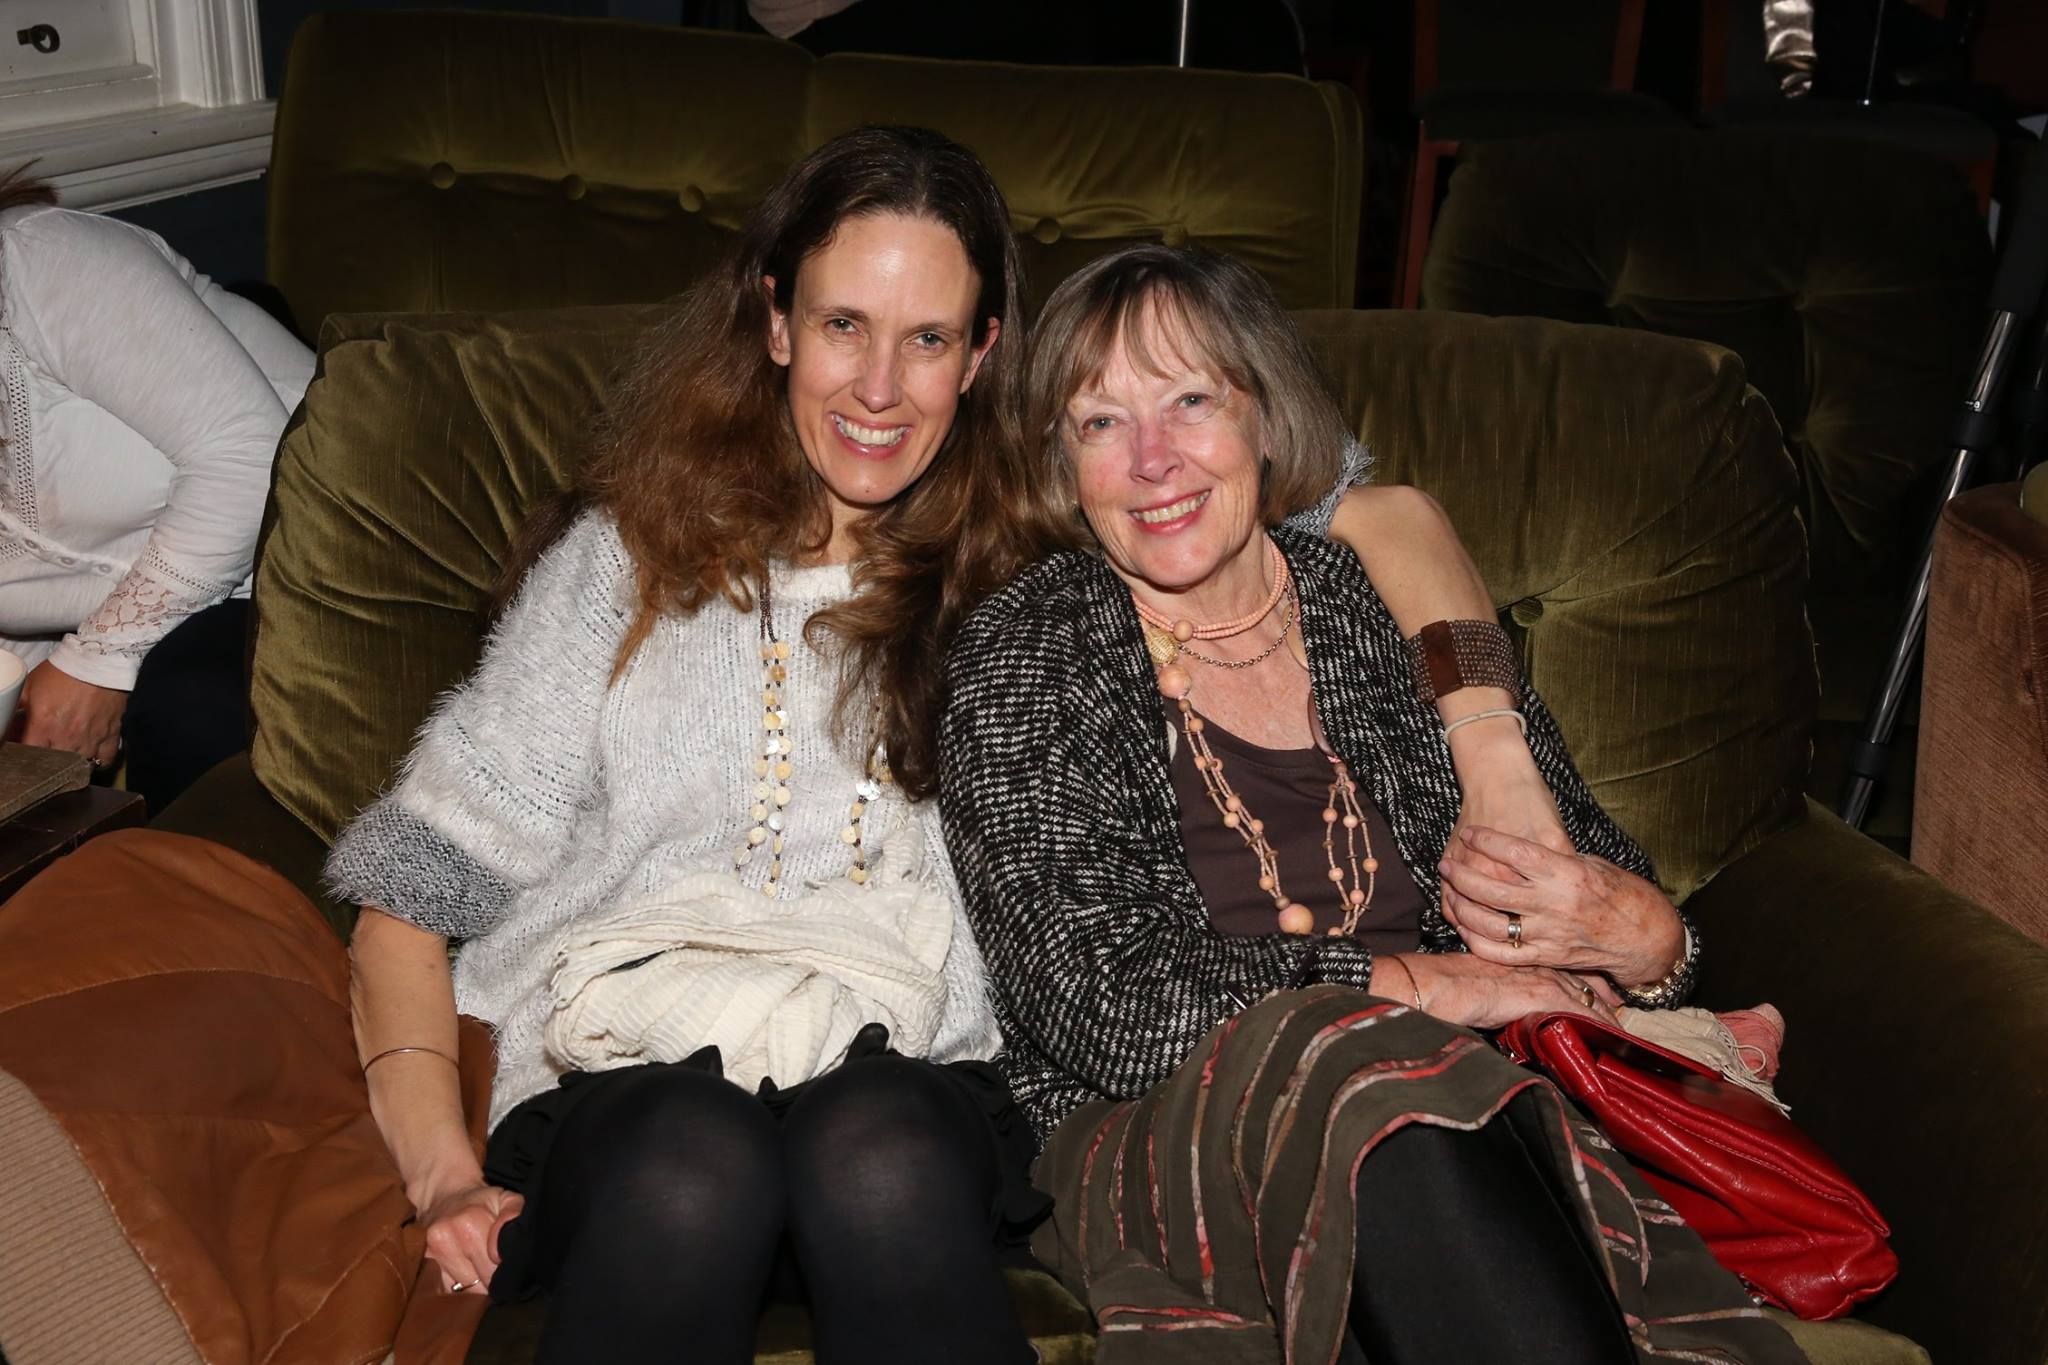 Mother/daughter and previous Mama Creatives presenter, at our evening talk.